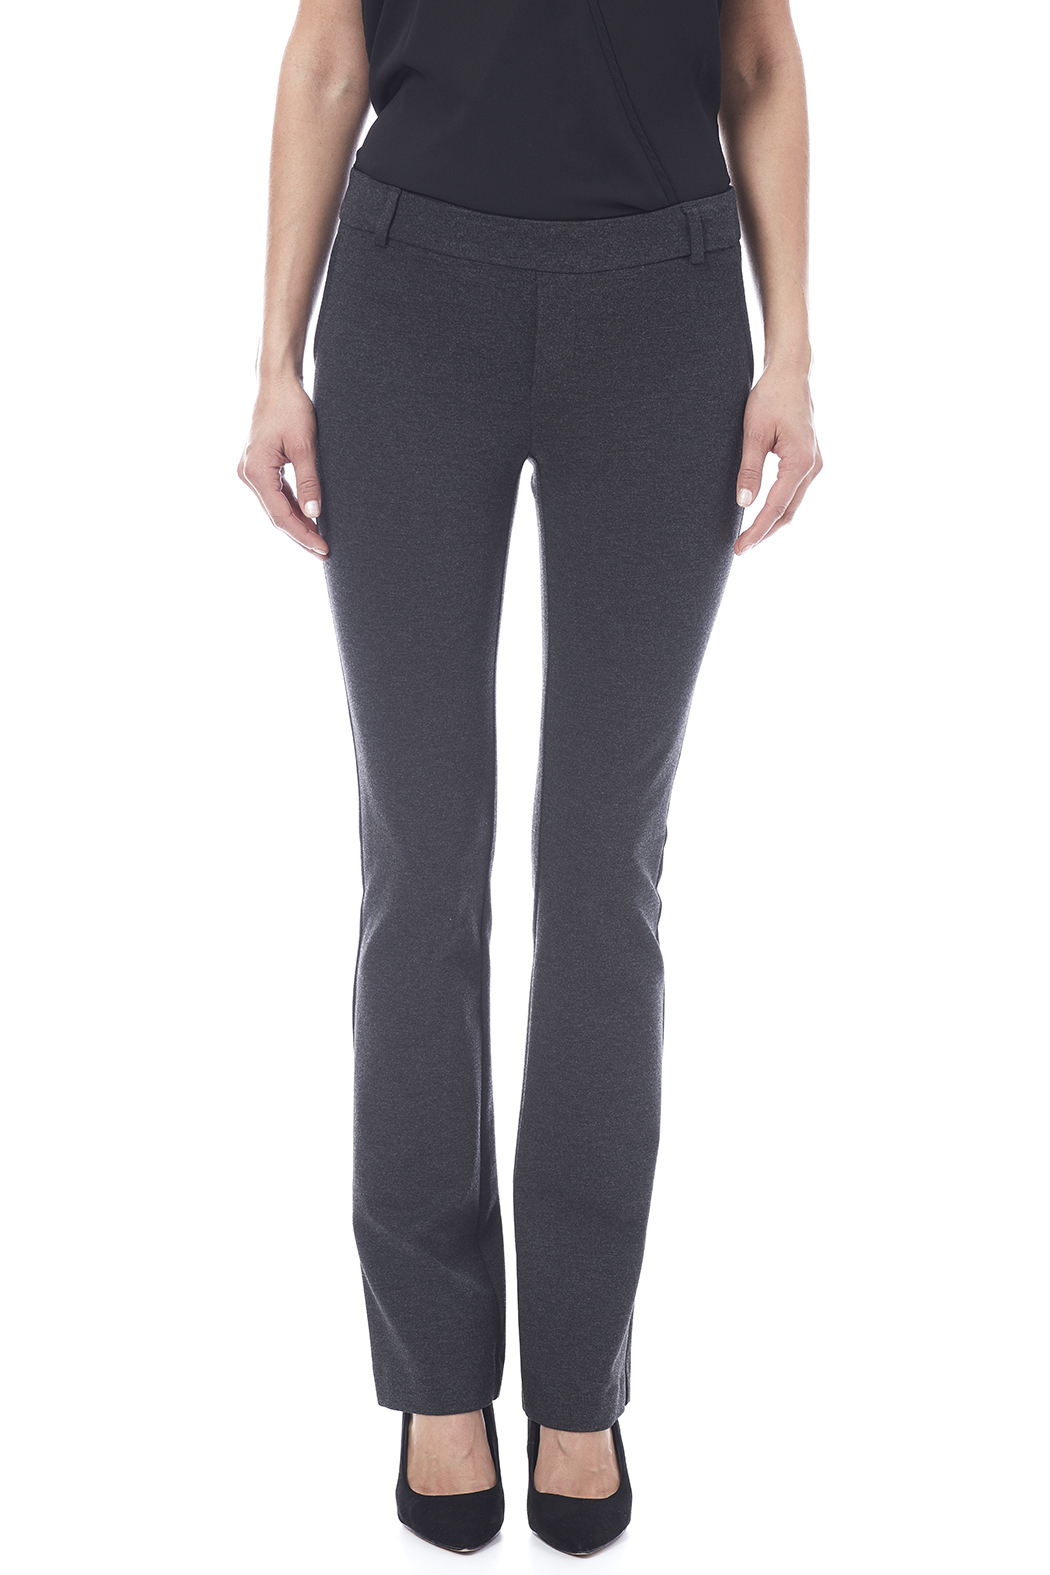 I Love Tyler Madison Charcoal Trouser Pant - Side Cropped Image